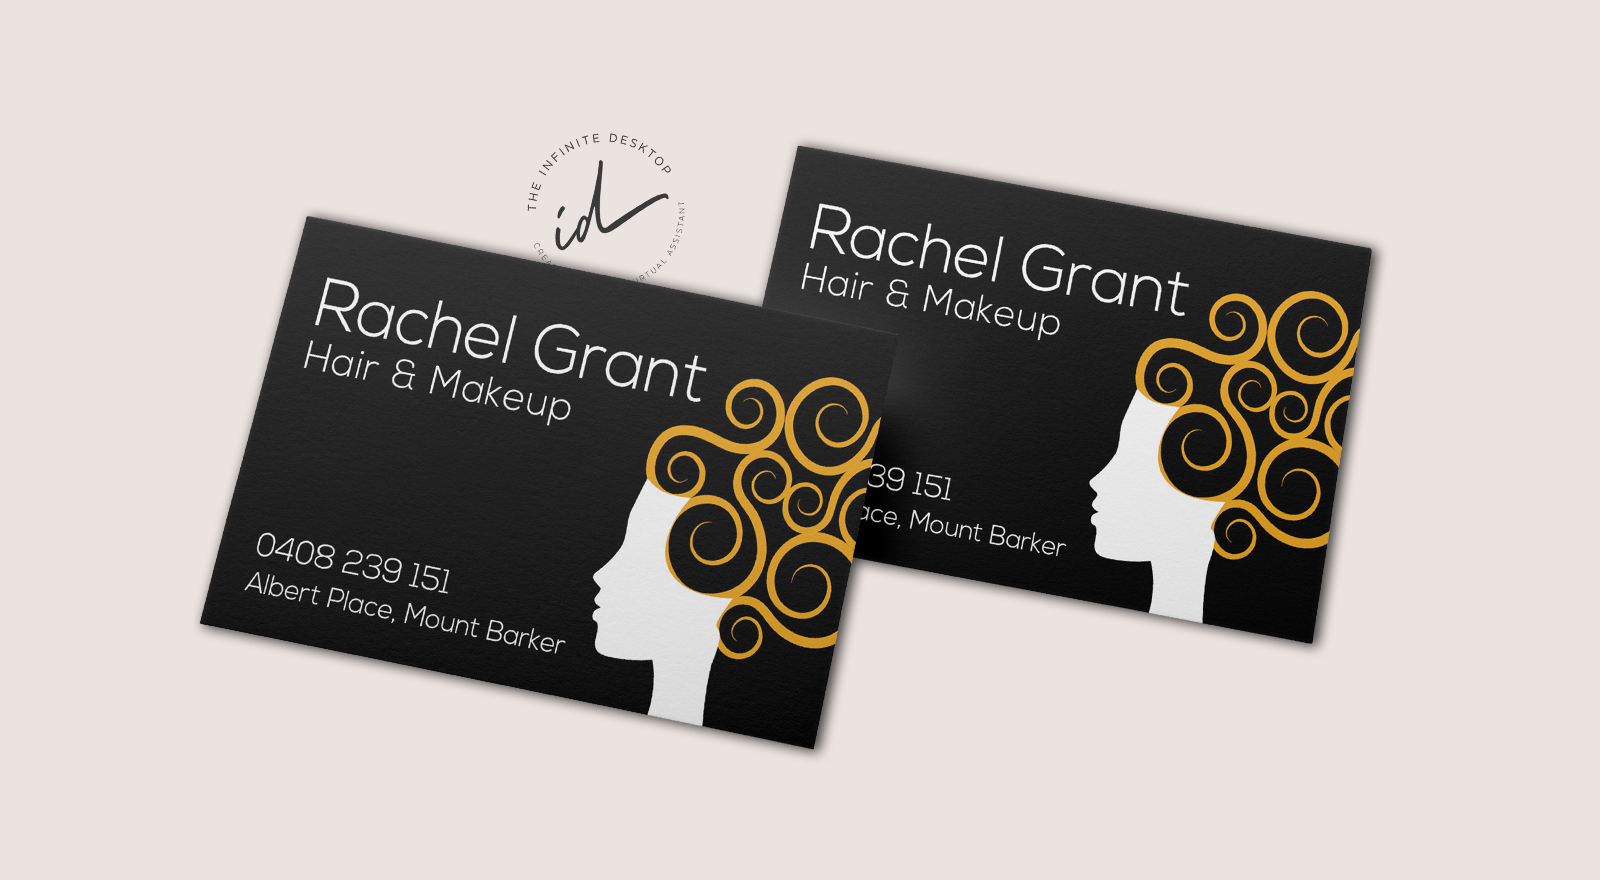 Business Card design for Rachel Grant Hair & Makeup